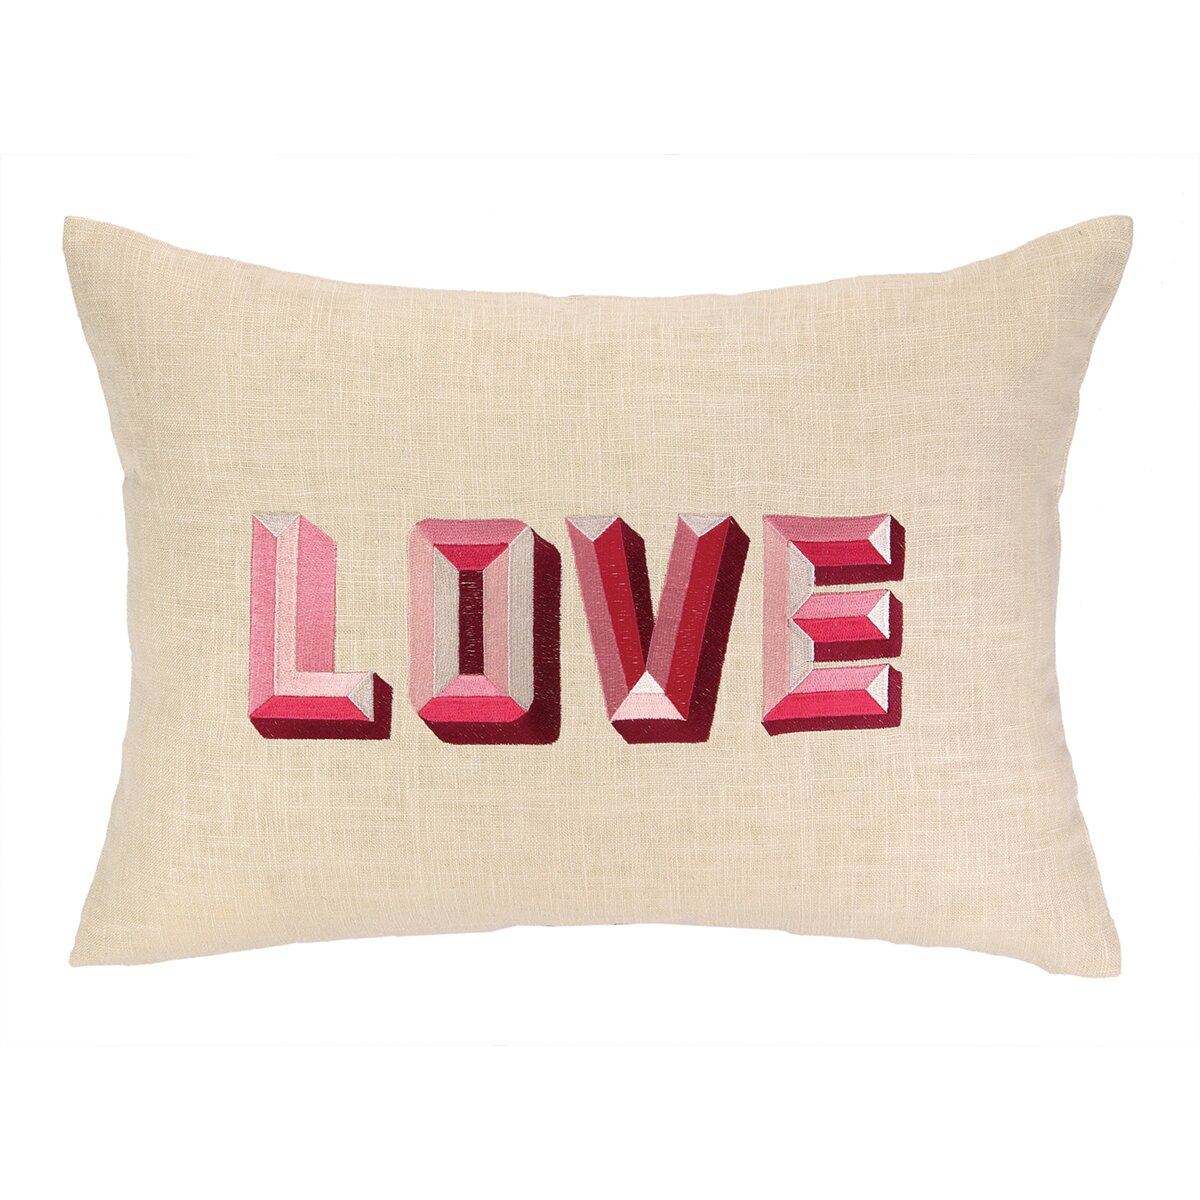 Decorative Love Pillow : D.L. Rhein Love Embroidered Decorative Linen Lumbar Pillow & Reviews Wayfair